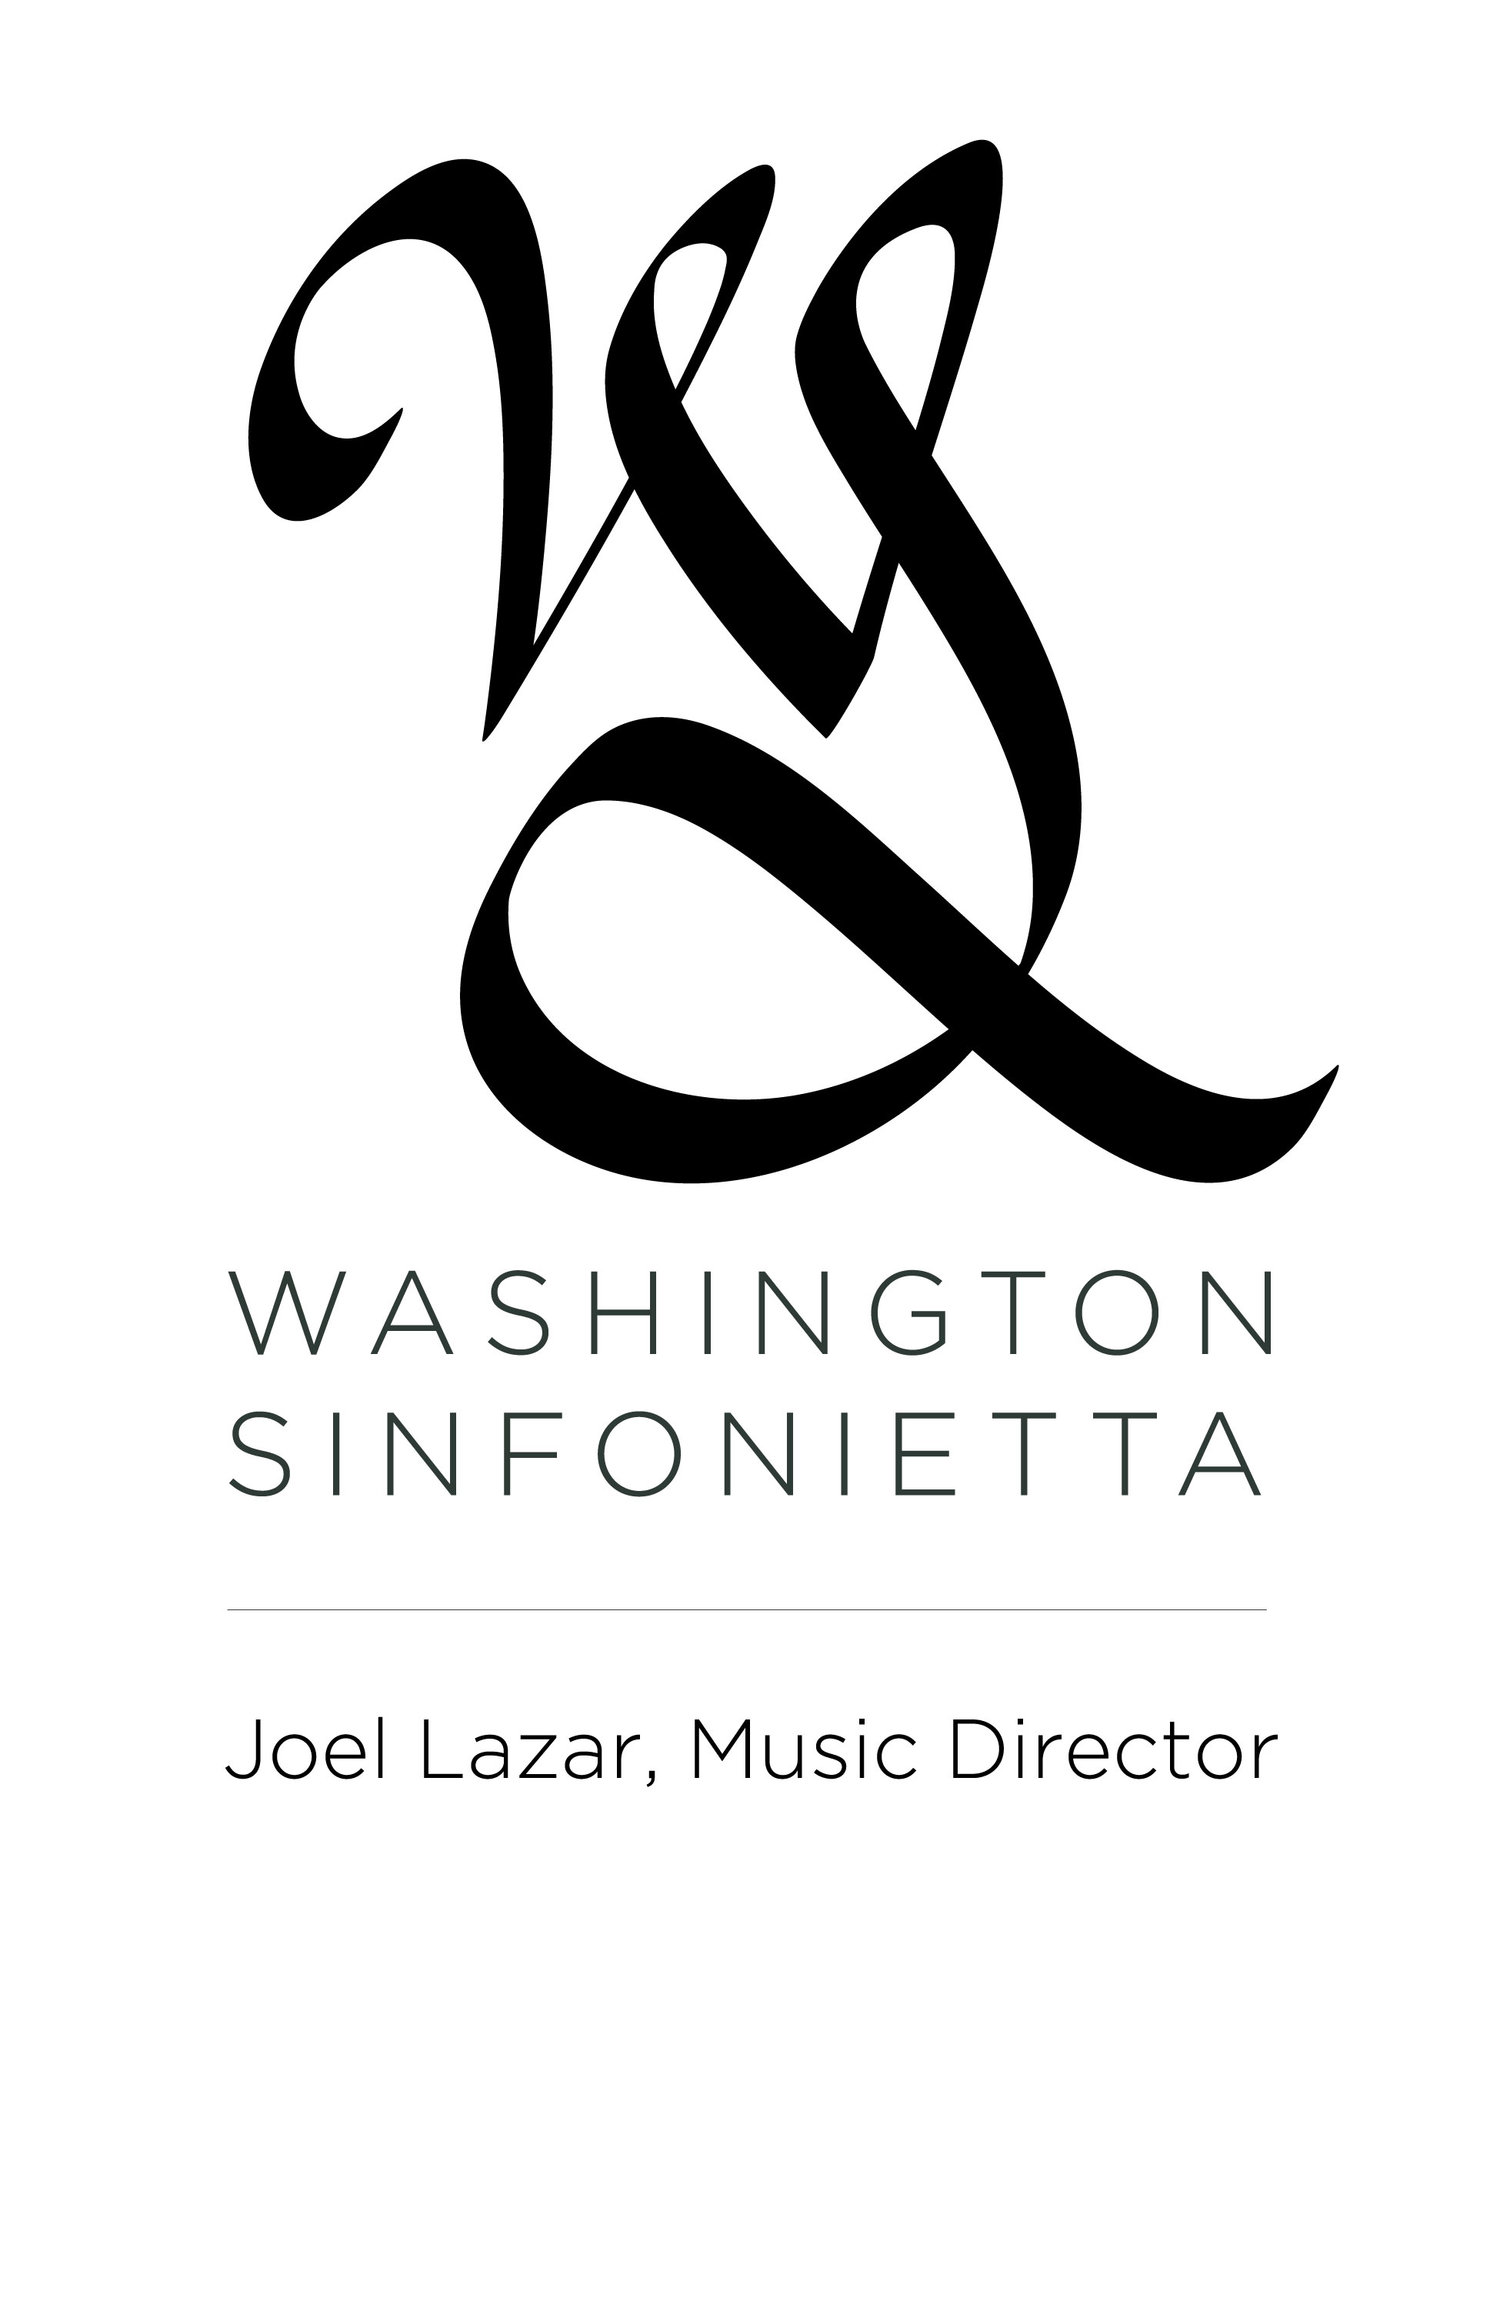 Washington Sinfonietta